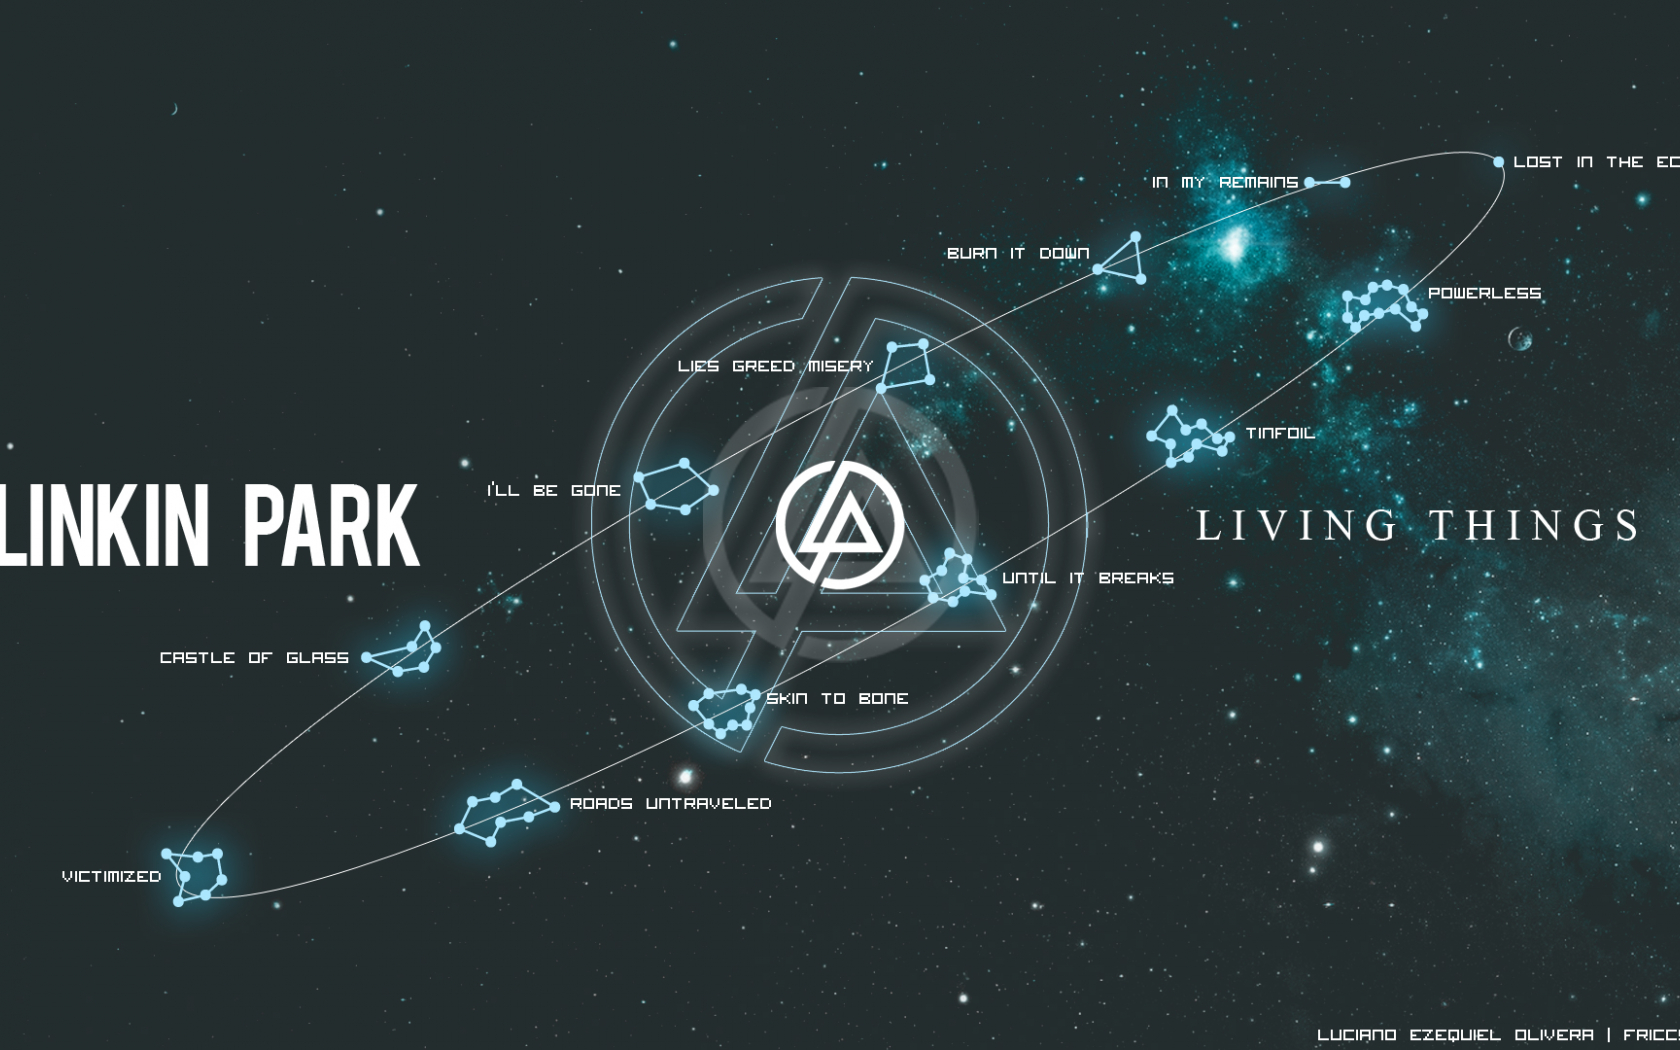 Free Download Linkin Park World News Linkin Park Living Things